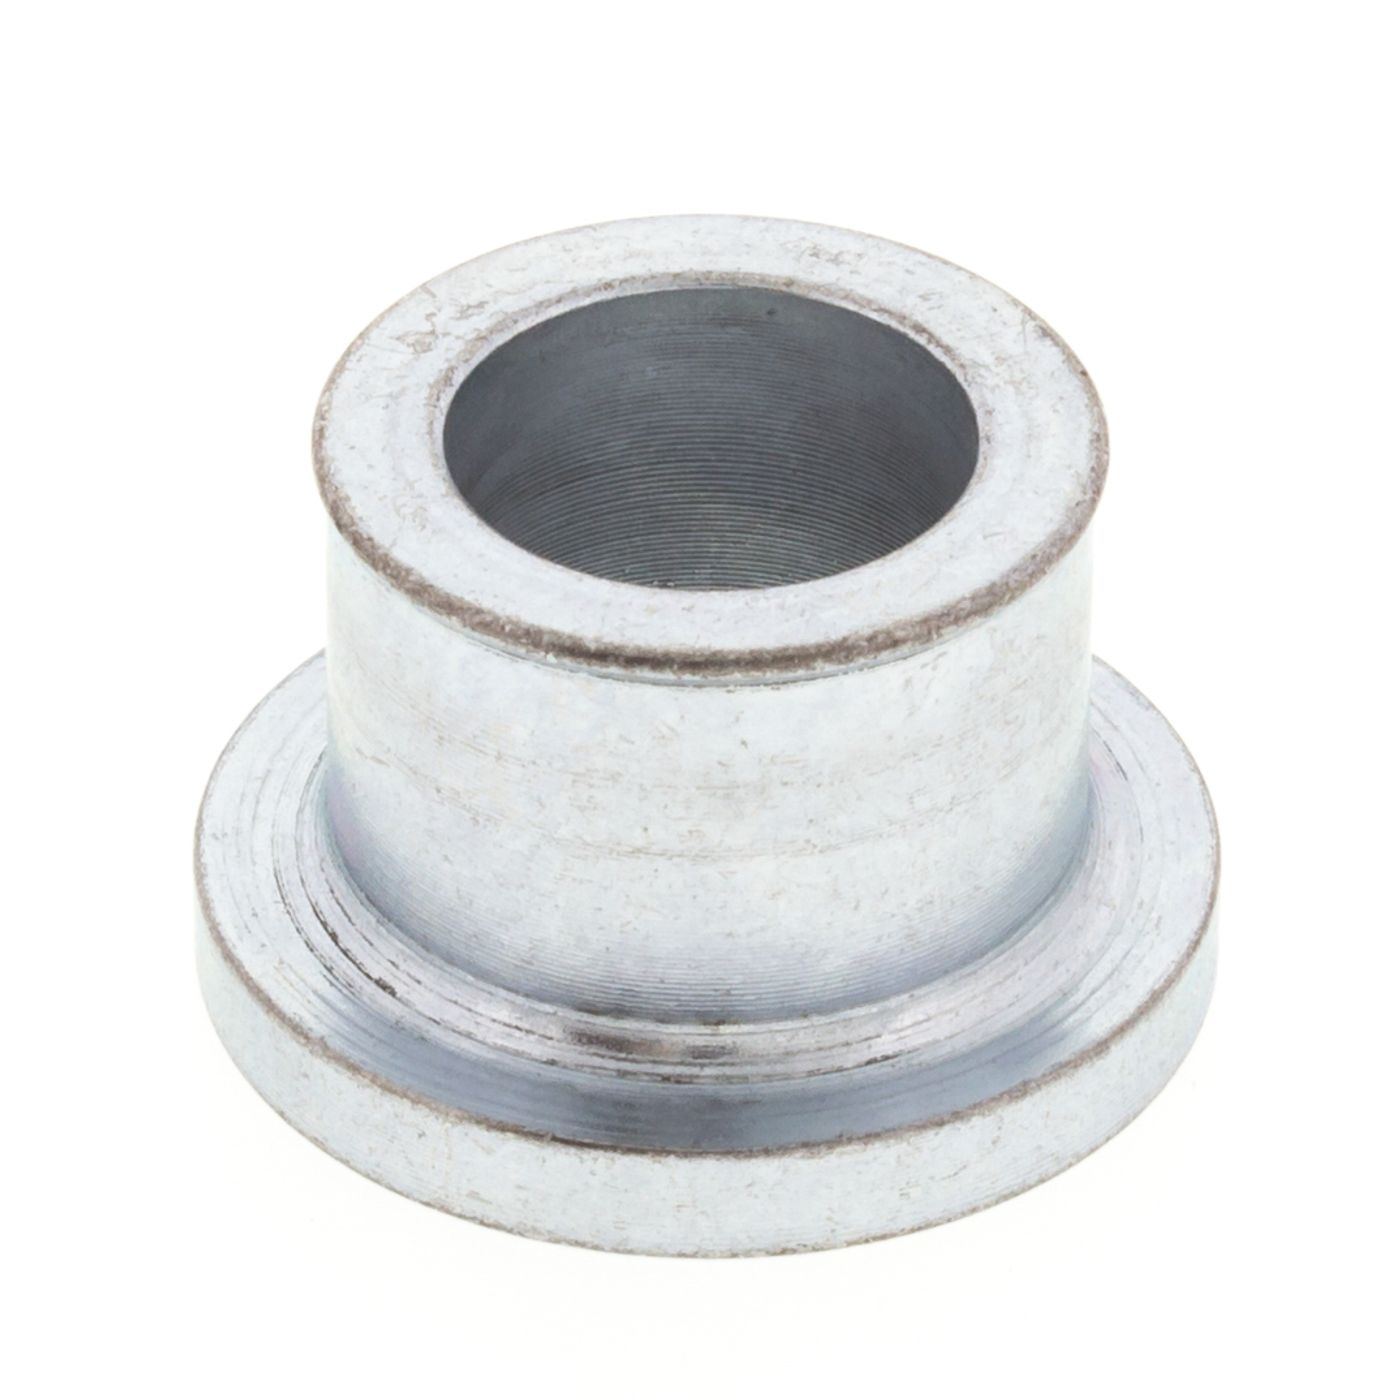 Wrp Rear Wheel Spacer Kits - WRP111017 image